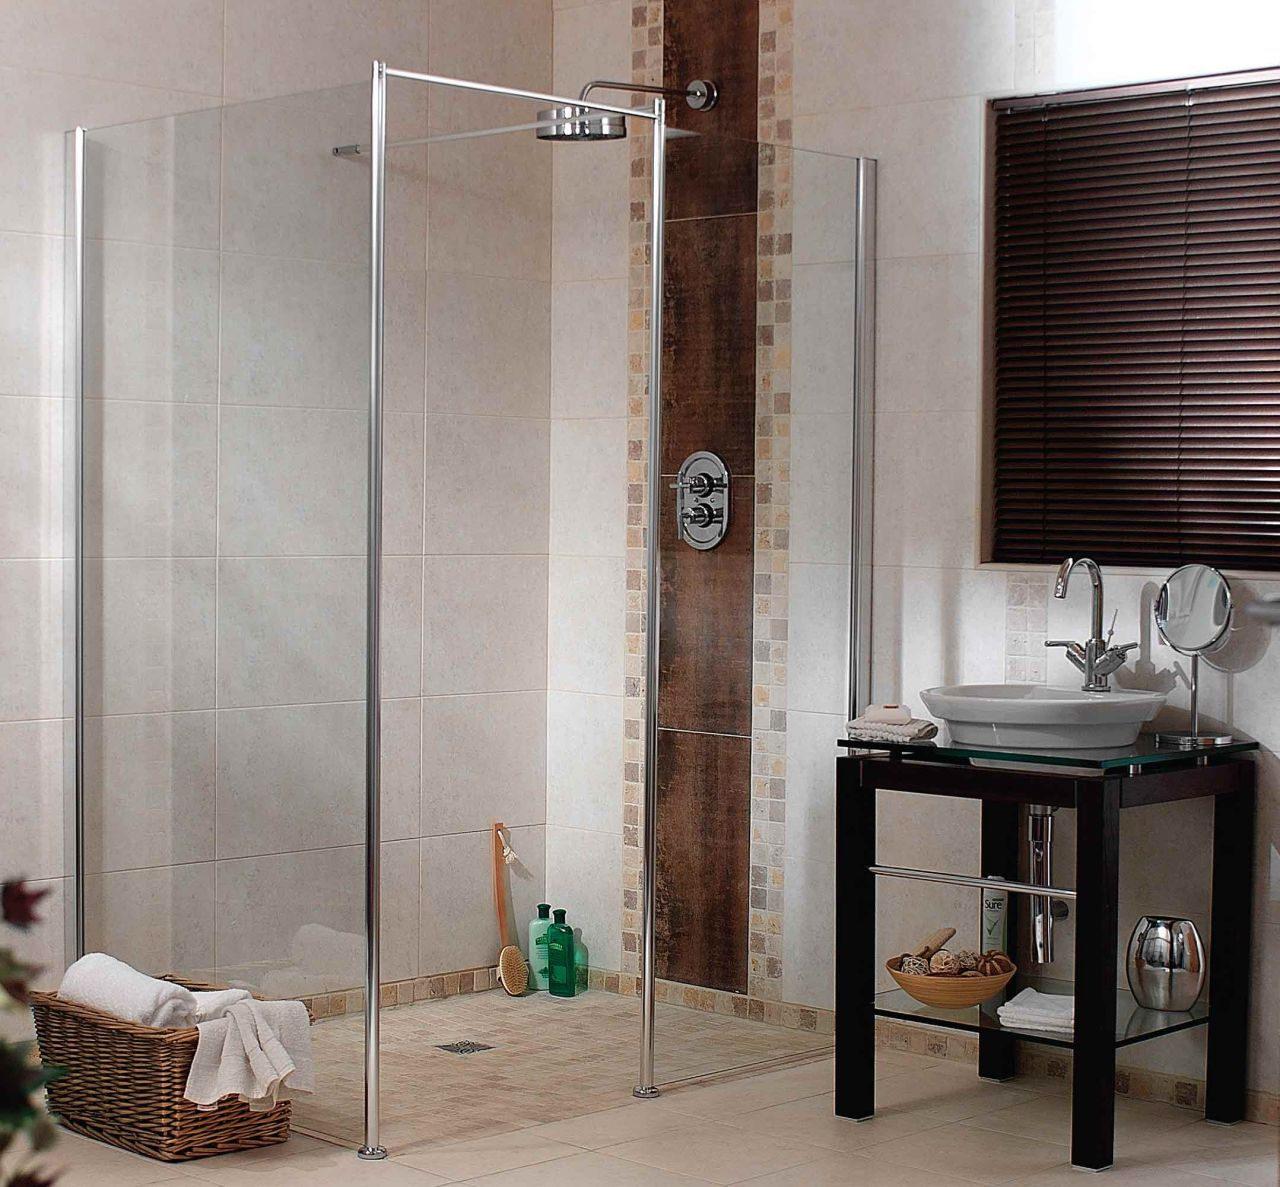 One level wet room system to make a 4' wide walk in or roll in shower